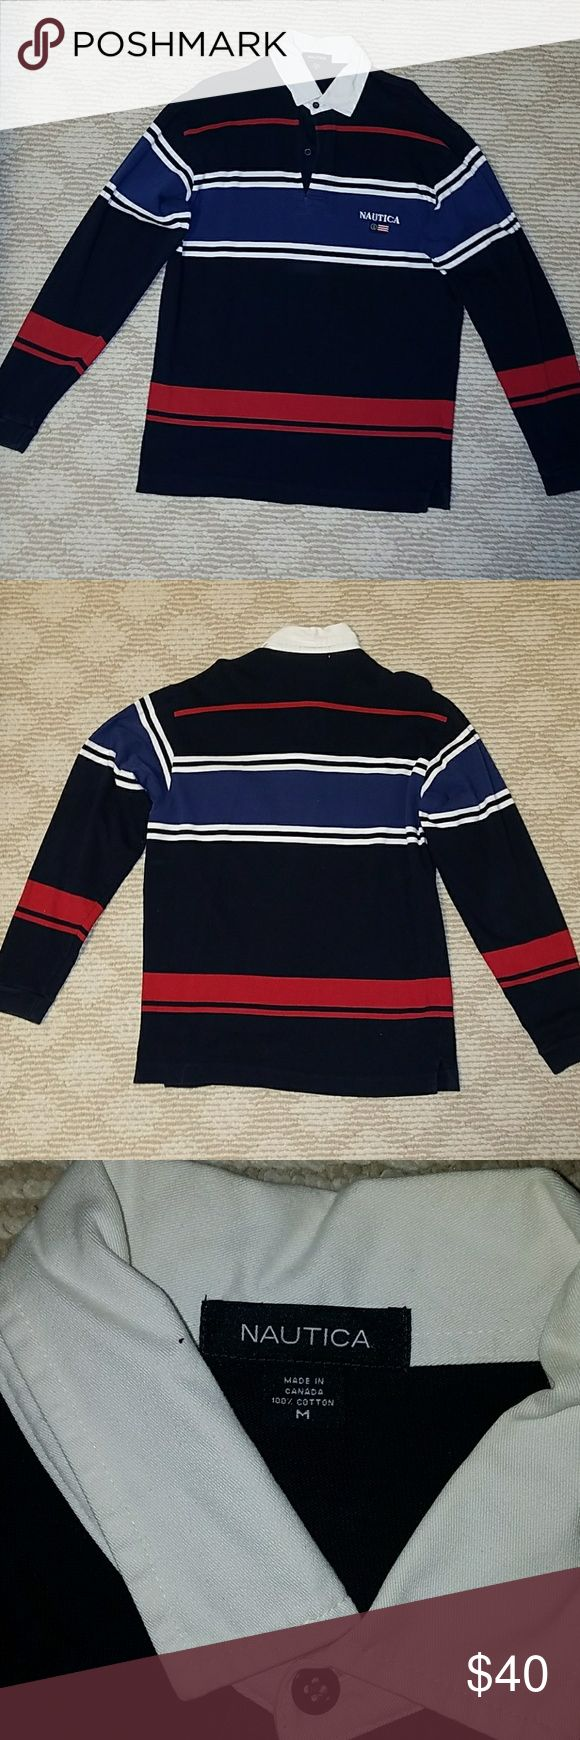 Nautica Mens Long Sleeve Polo Nautica Brand Mens Size L Dark Blue Polo with red and white stripes Very Good Condition Nautica Jackets & Coats Vests